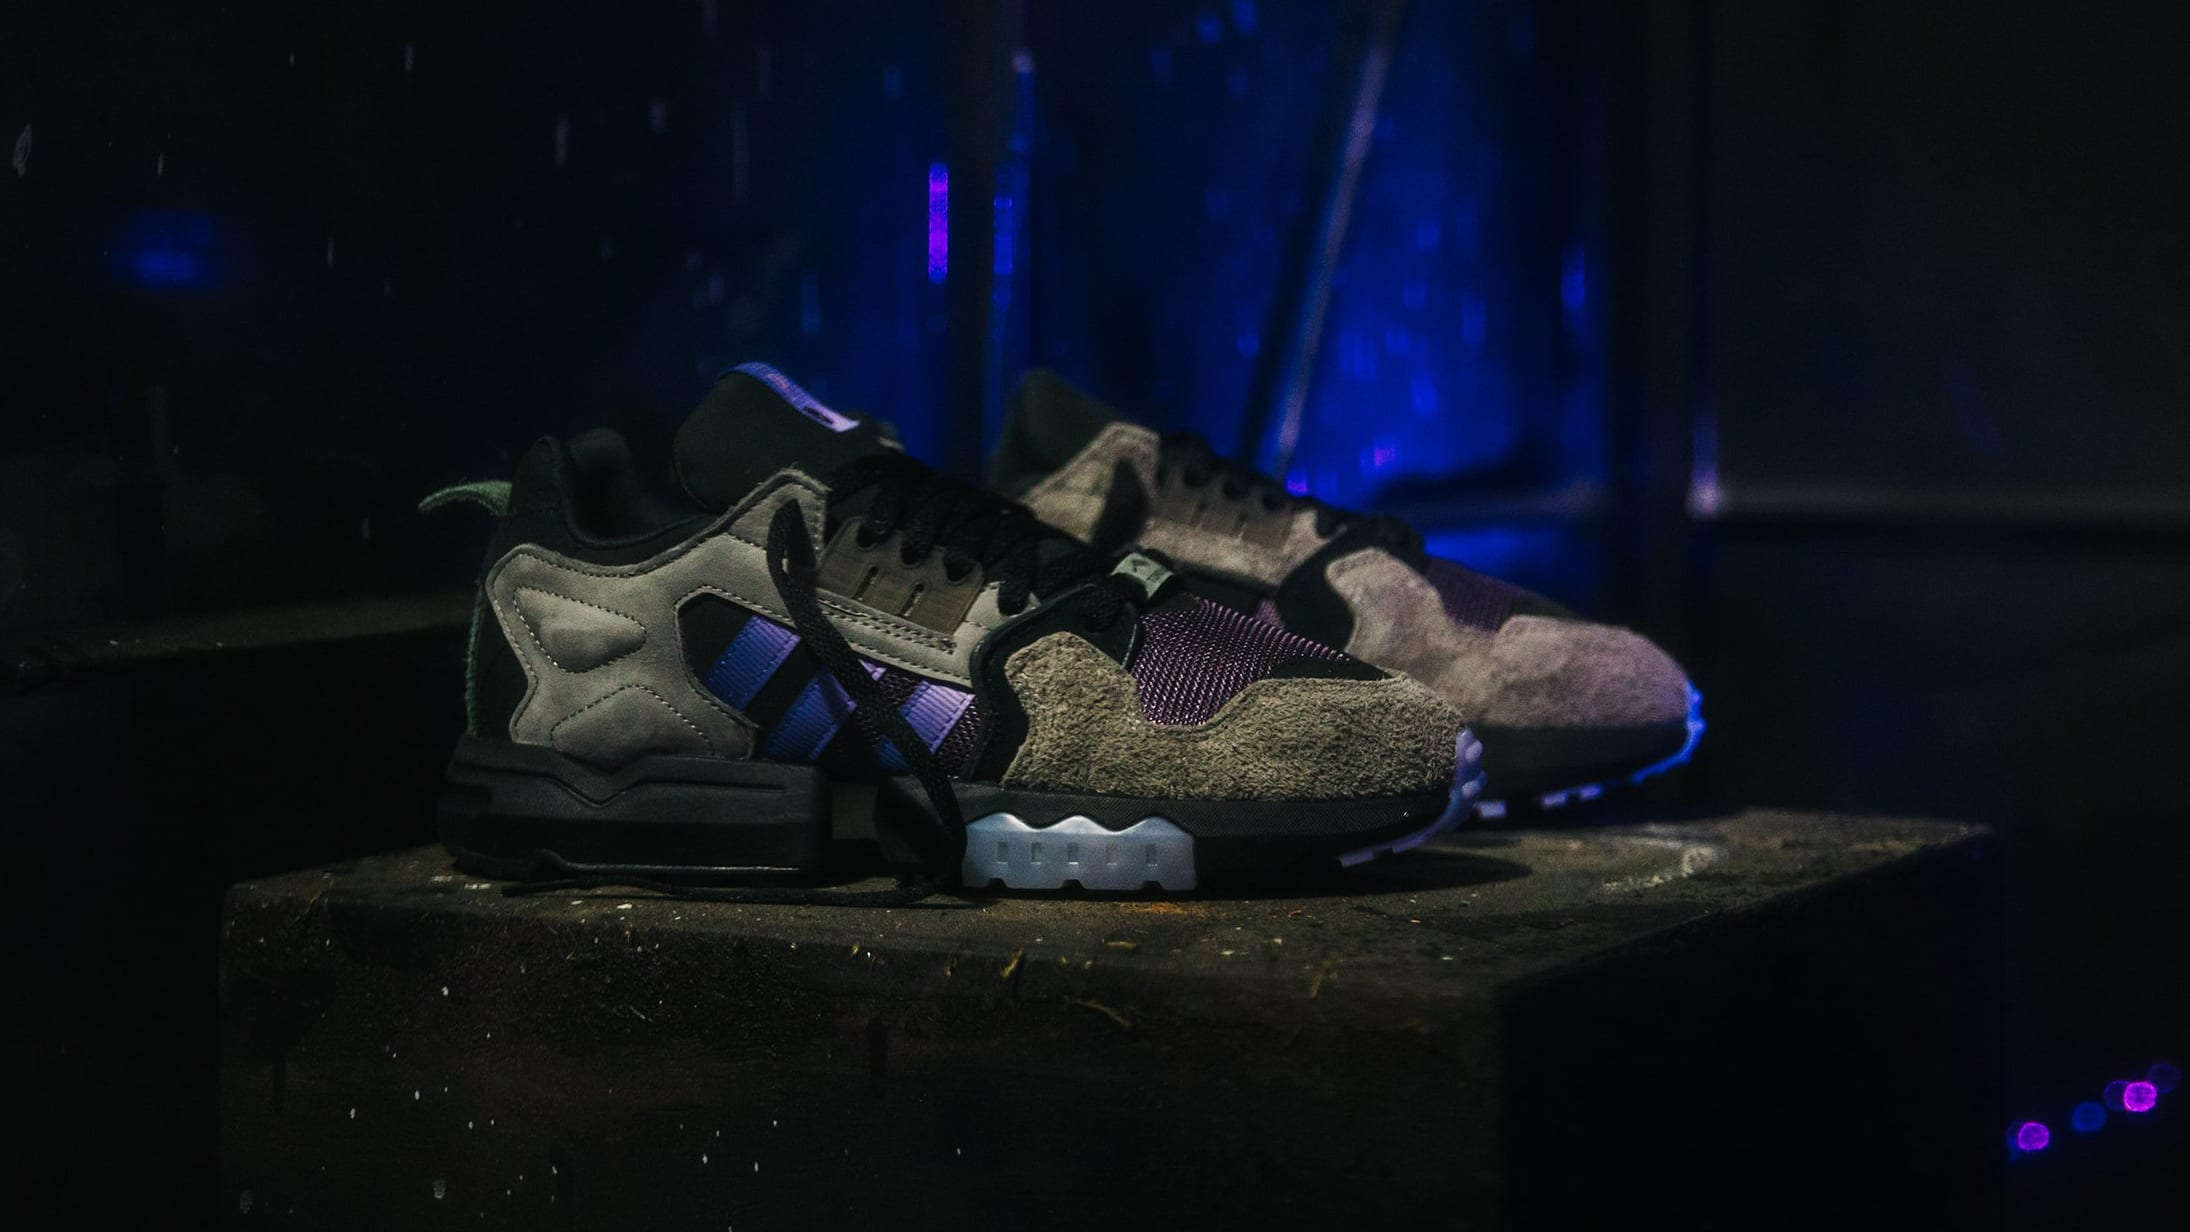 packer-shoes-adidas-consortium-zx-torsion-mega-violet-lateral